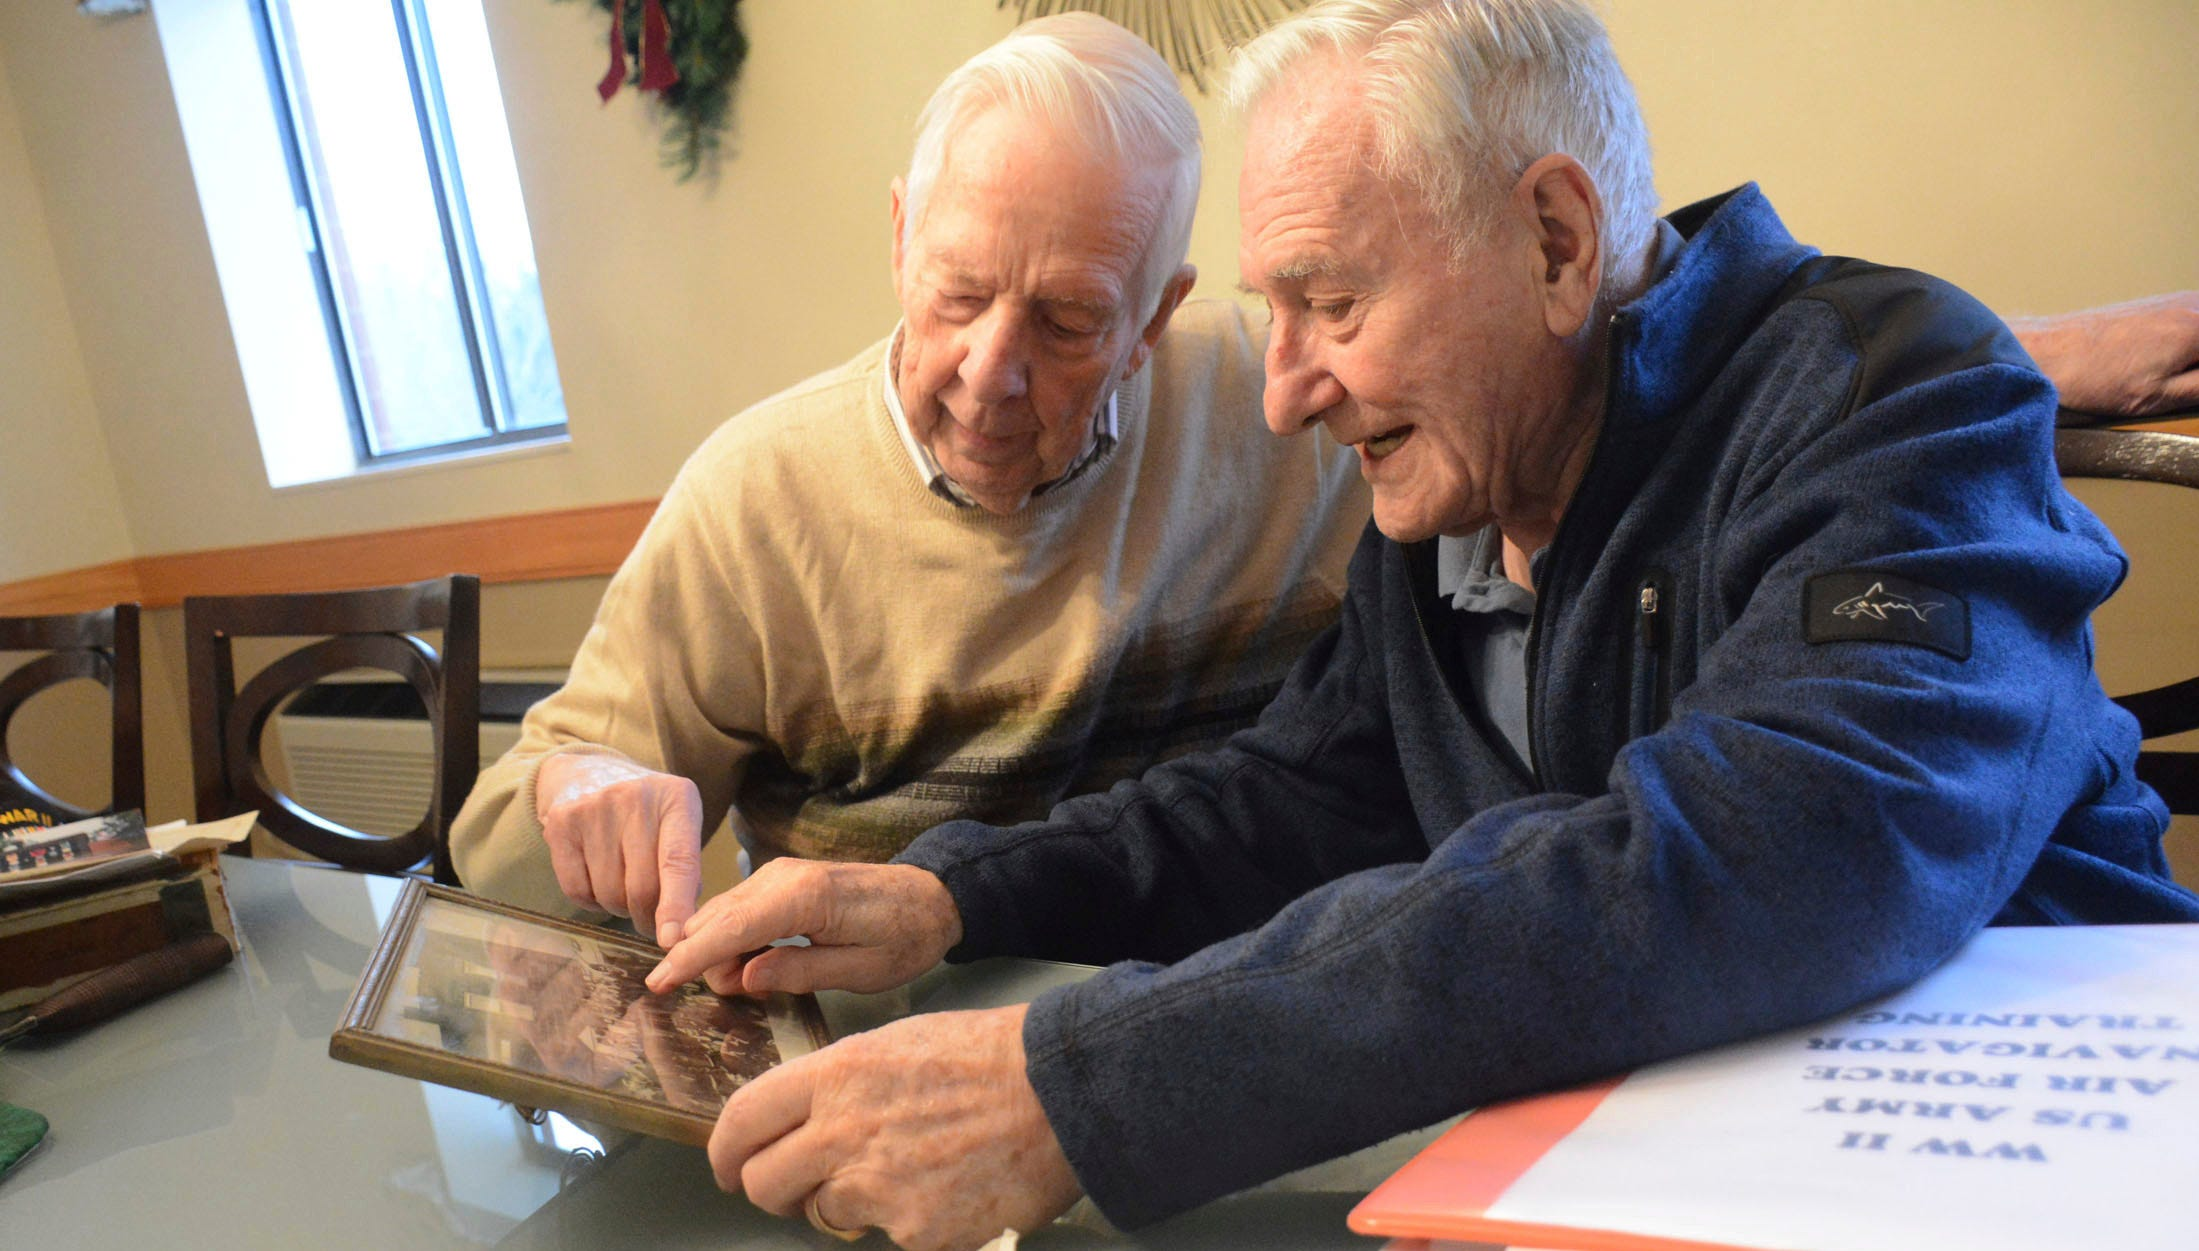 Bob Adams, 95, and Wes Piros, 95, share memories and stories about their days in the U.S. Army Air Force during WWII in Monroeville, Pennsylvania, on Nov. 28, 2018. Adams found a photograph taken 74 years ago of his unit during training and shared it with Piros, and to their surprise, both men were in the same picture and they soon discovered they spent time together training for the U.S. Army Air Force unit. The two gentlemen currently reside at Beatty Pointe Village in Monroeville.